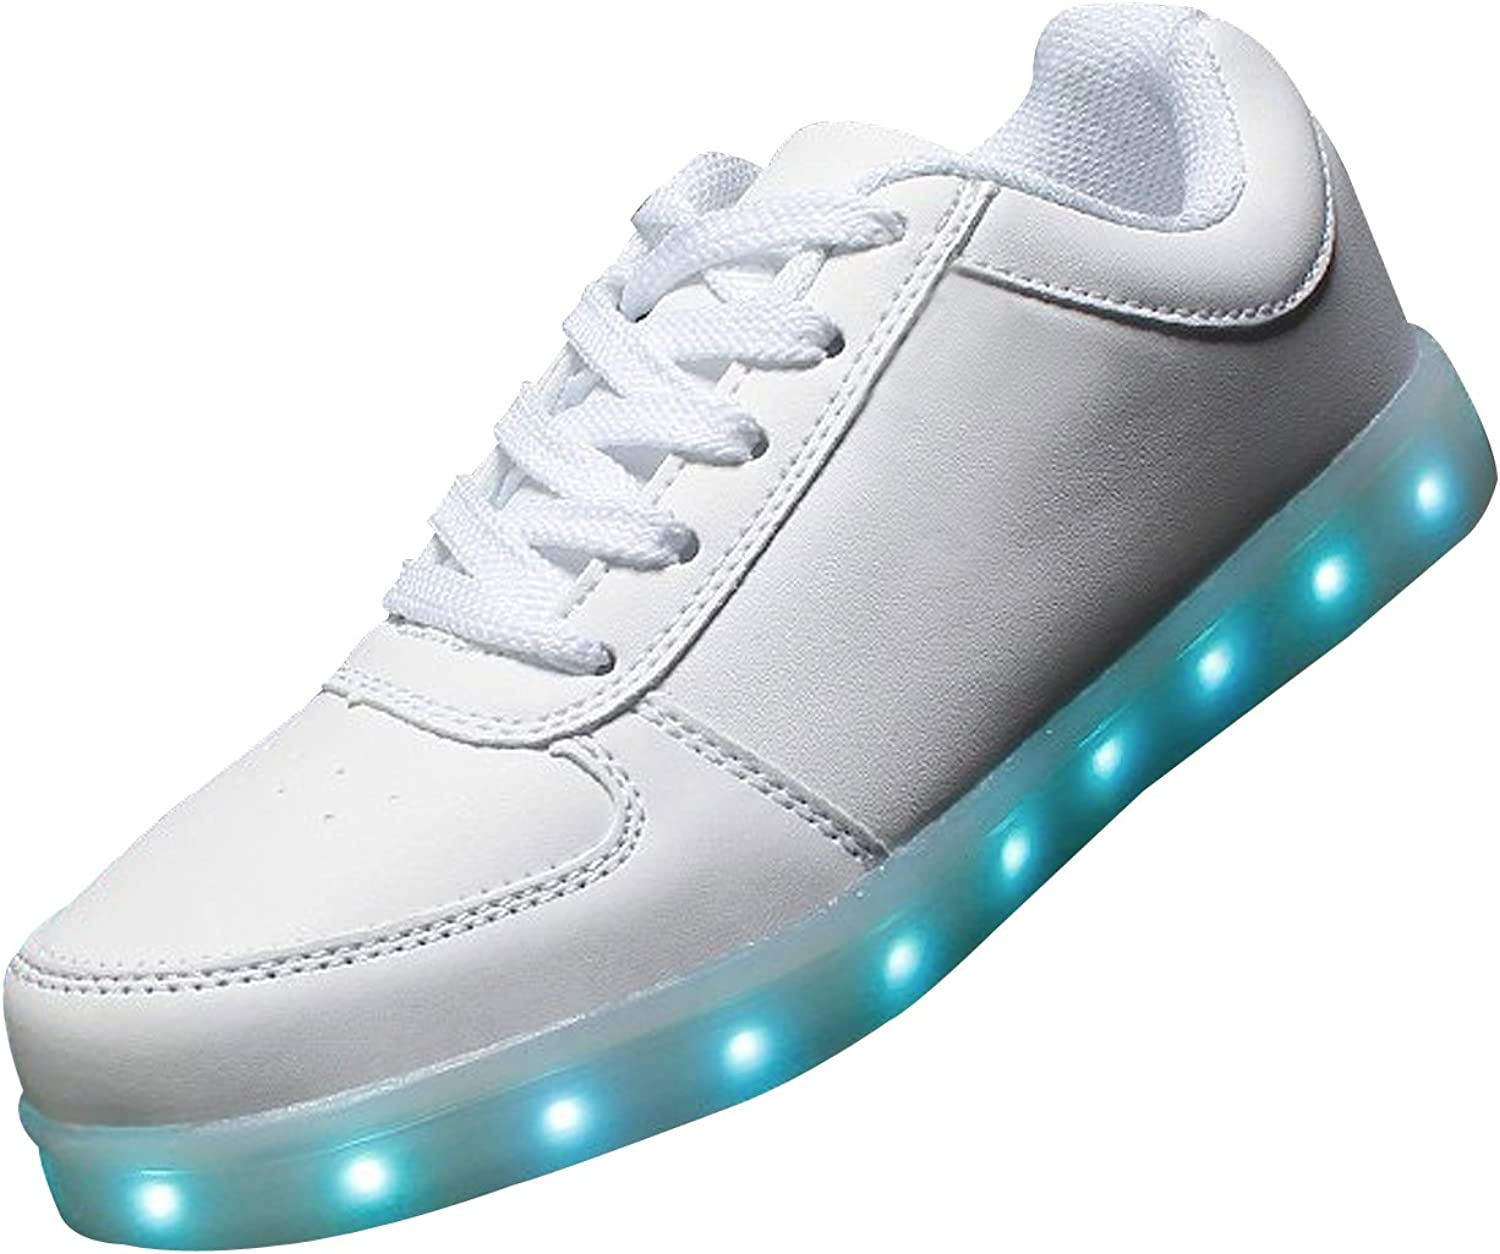 Colour Changing LED Lighting Shoes